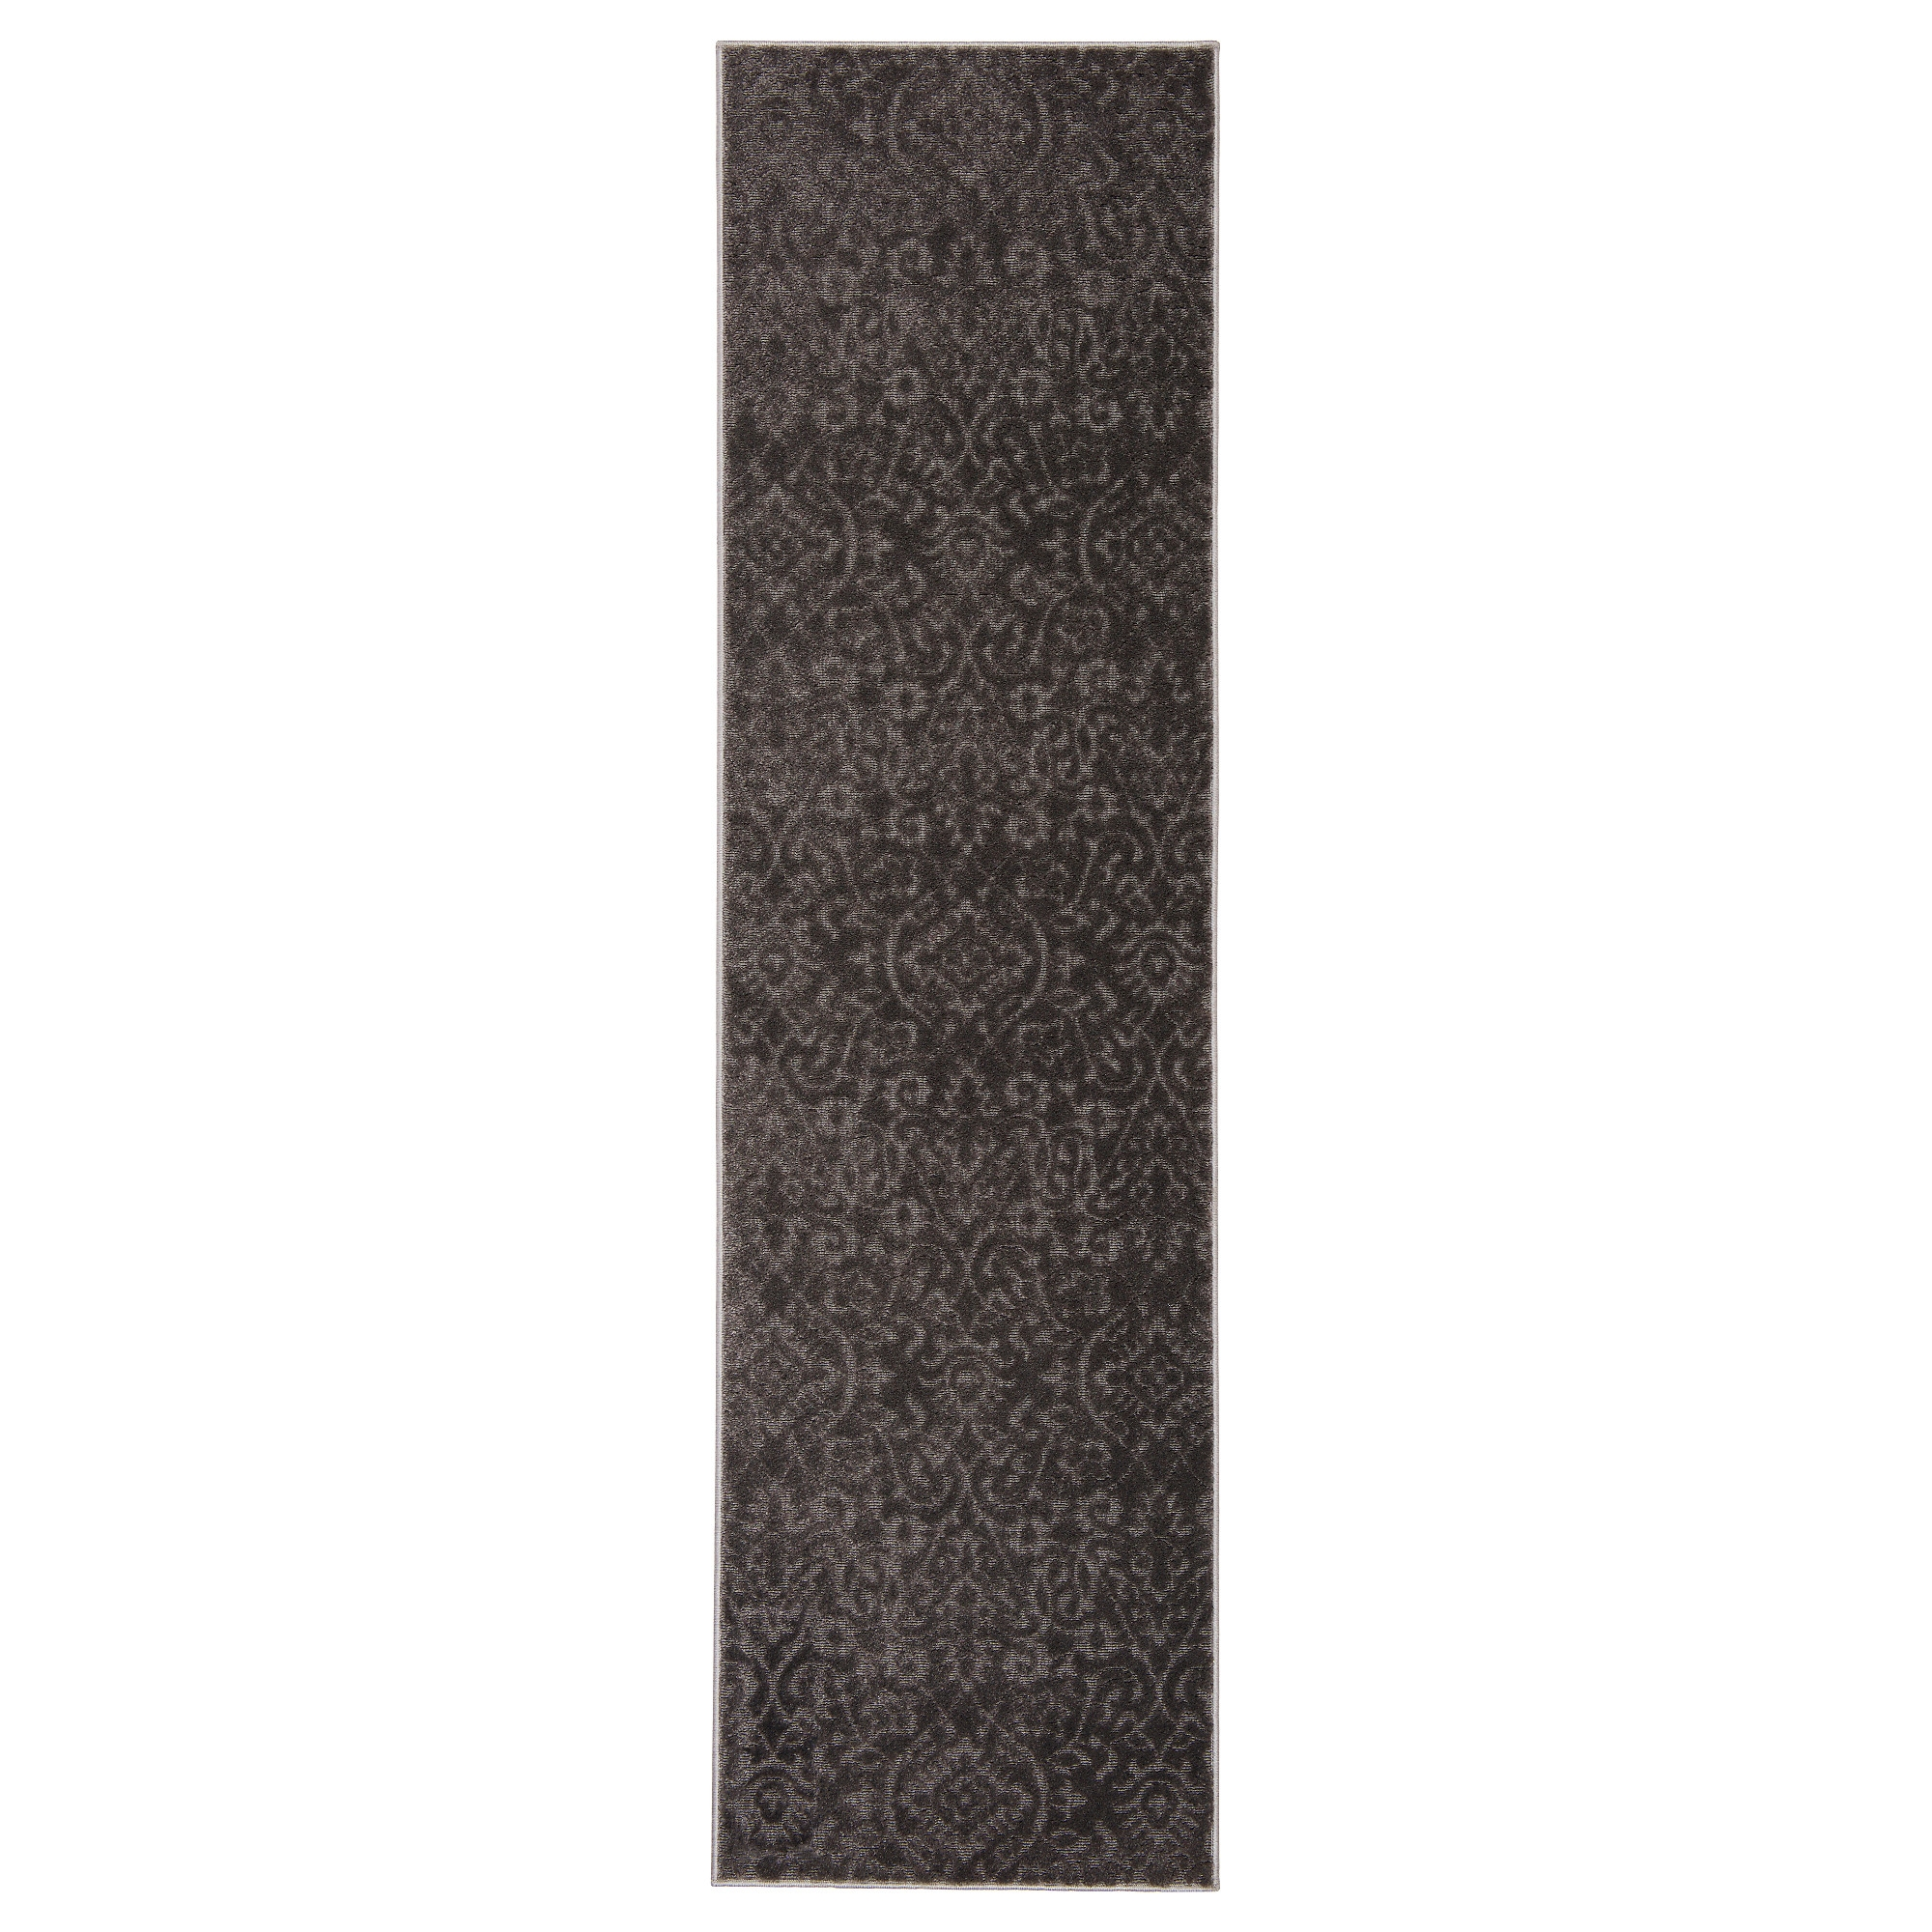 Runners Small Rugs Ikea With Black Runner Rugs For Hallway (#18 of 20)